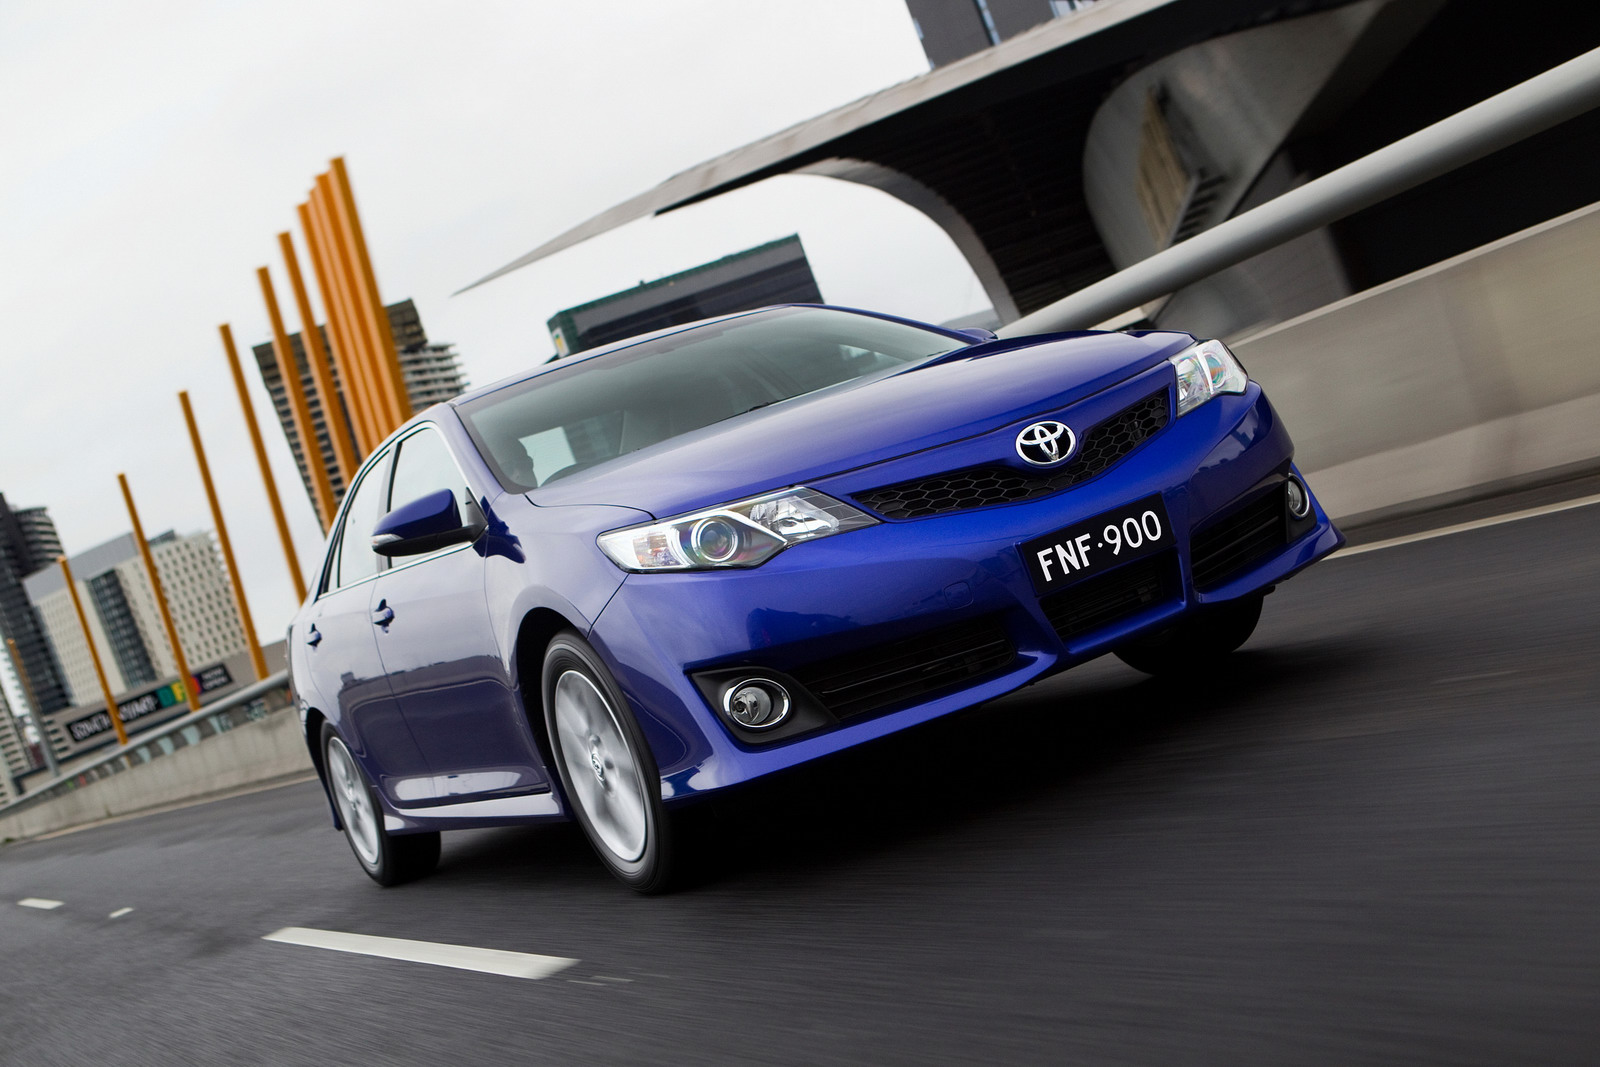 brand new toyota camry price in australia velg grand veloz 1.5 2012 for unveiled autoevolution